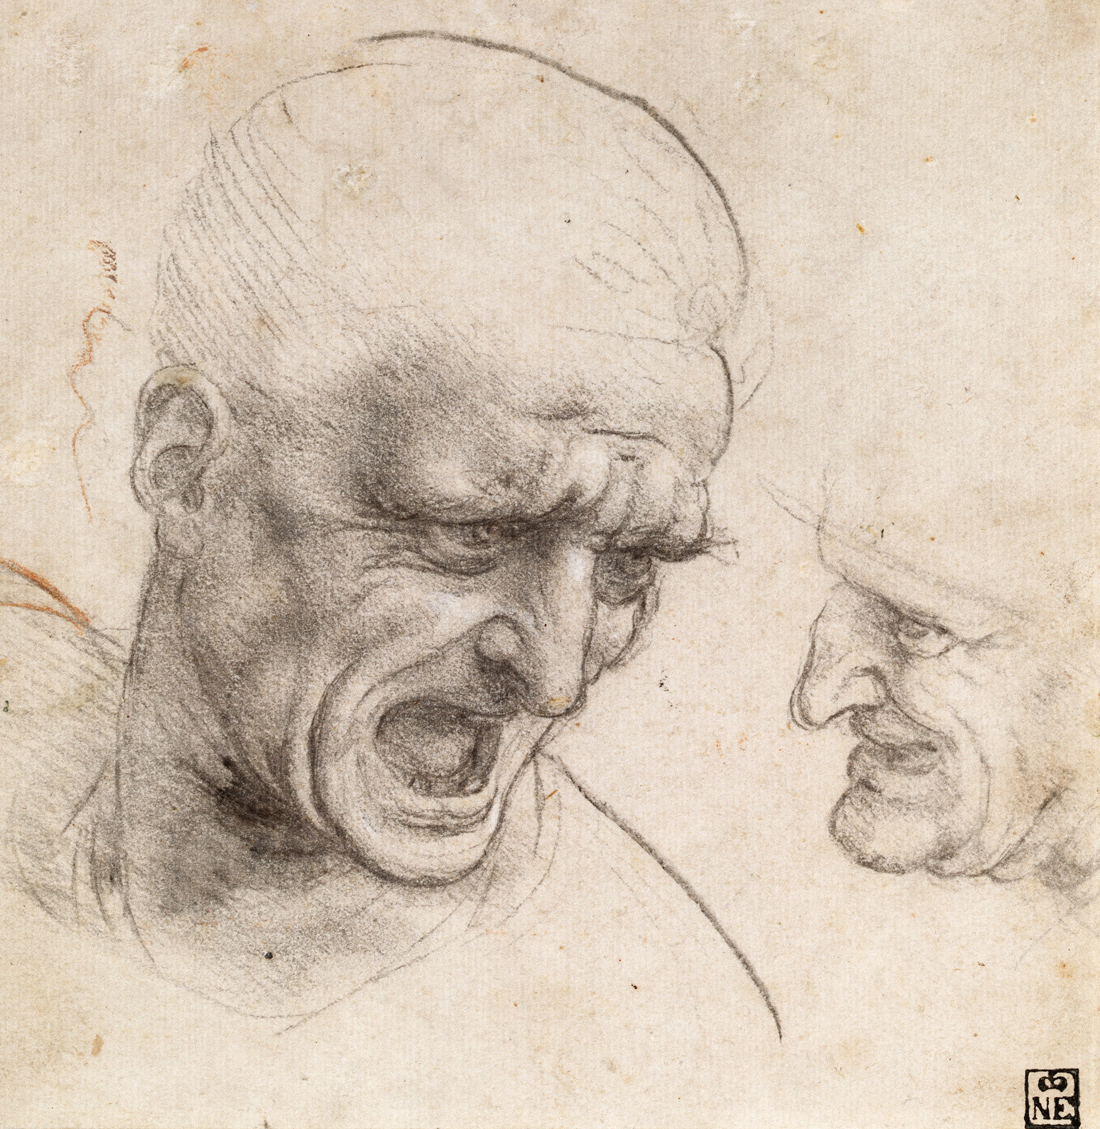 Study of Two Warriors' Heads for the Battle of Anghiari, by Leonardo da Vinci, c. 1504. Museum of Fine Arts, Budapest, Hungary.